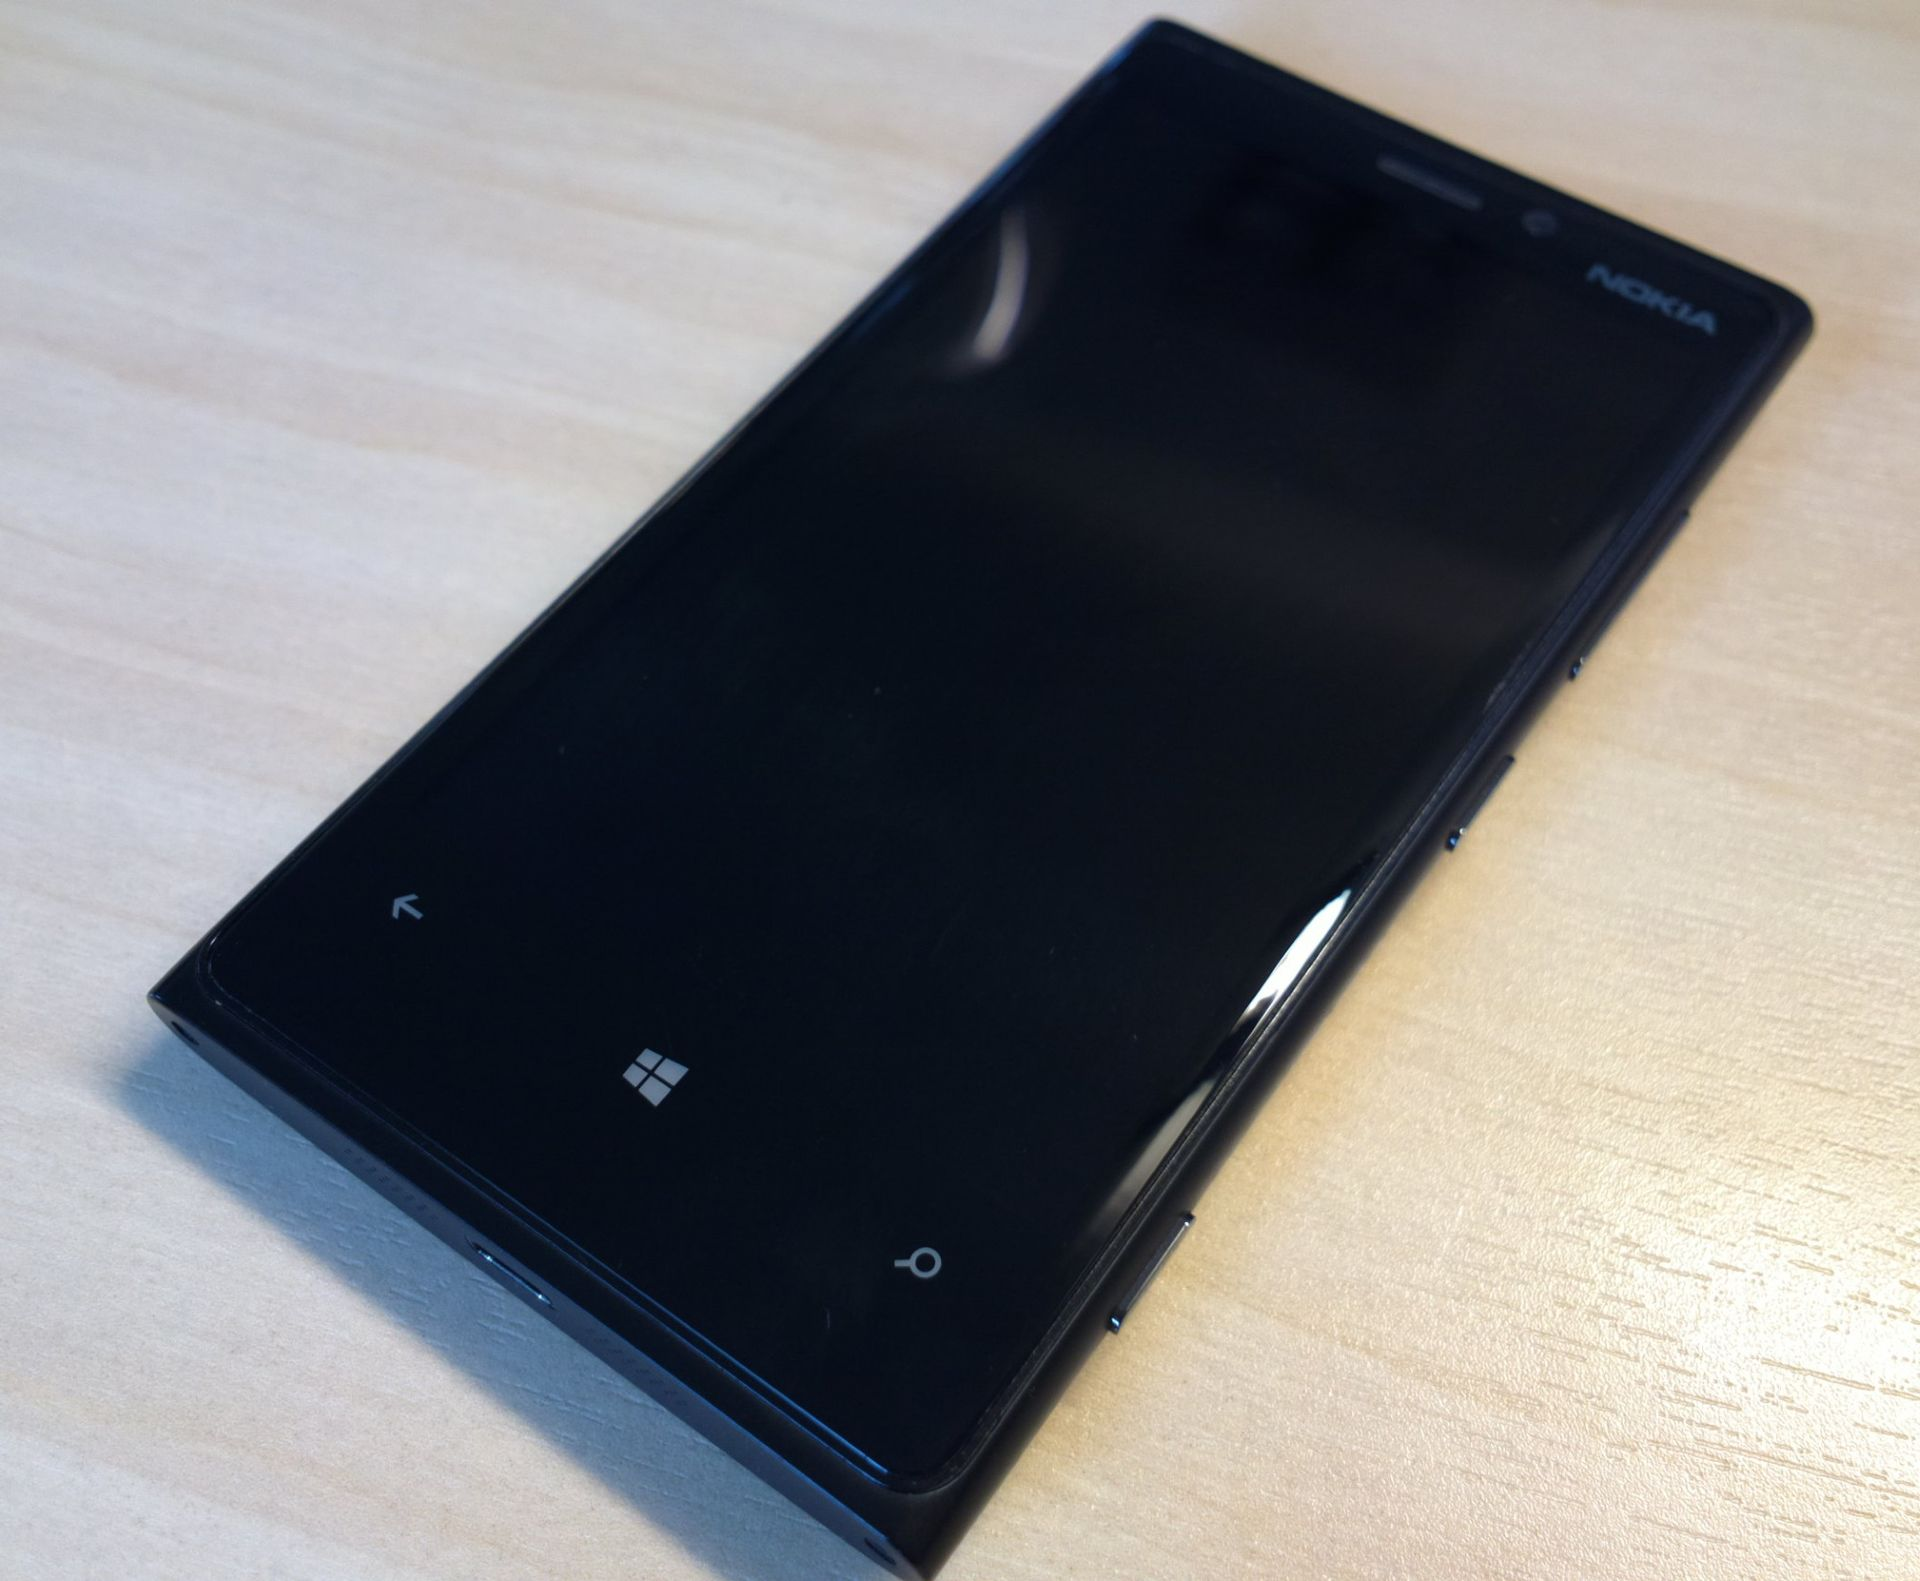 Nokia Lumia 920 Wikipedia